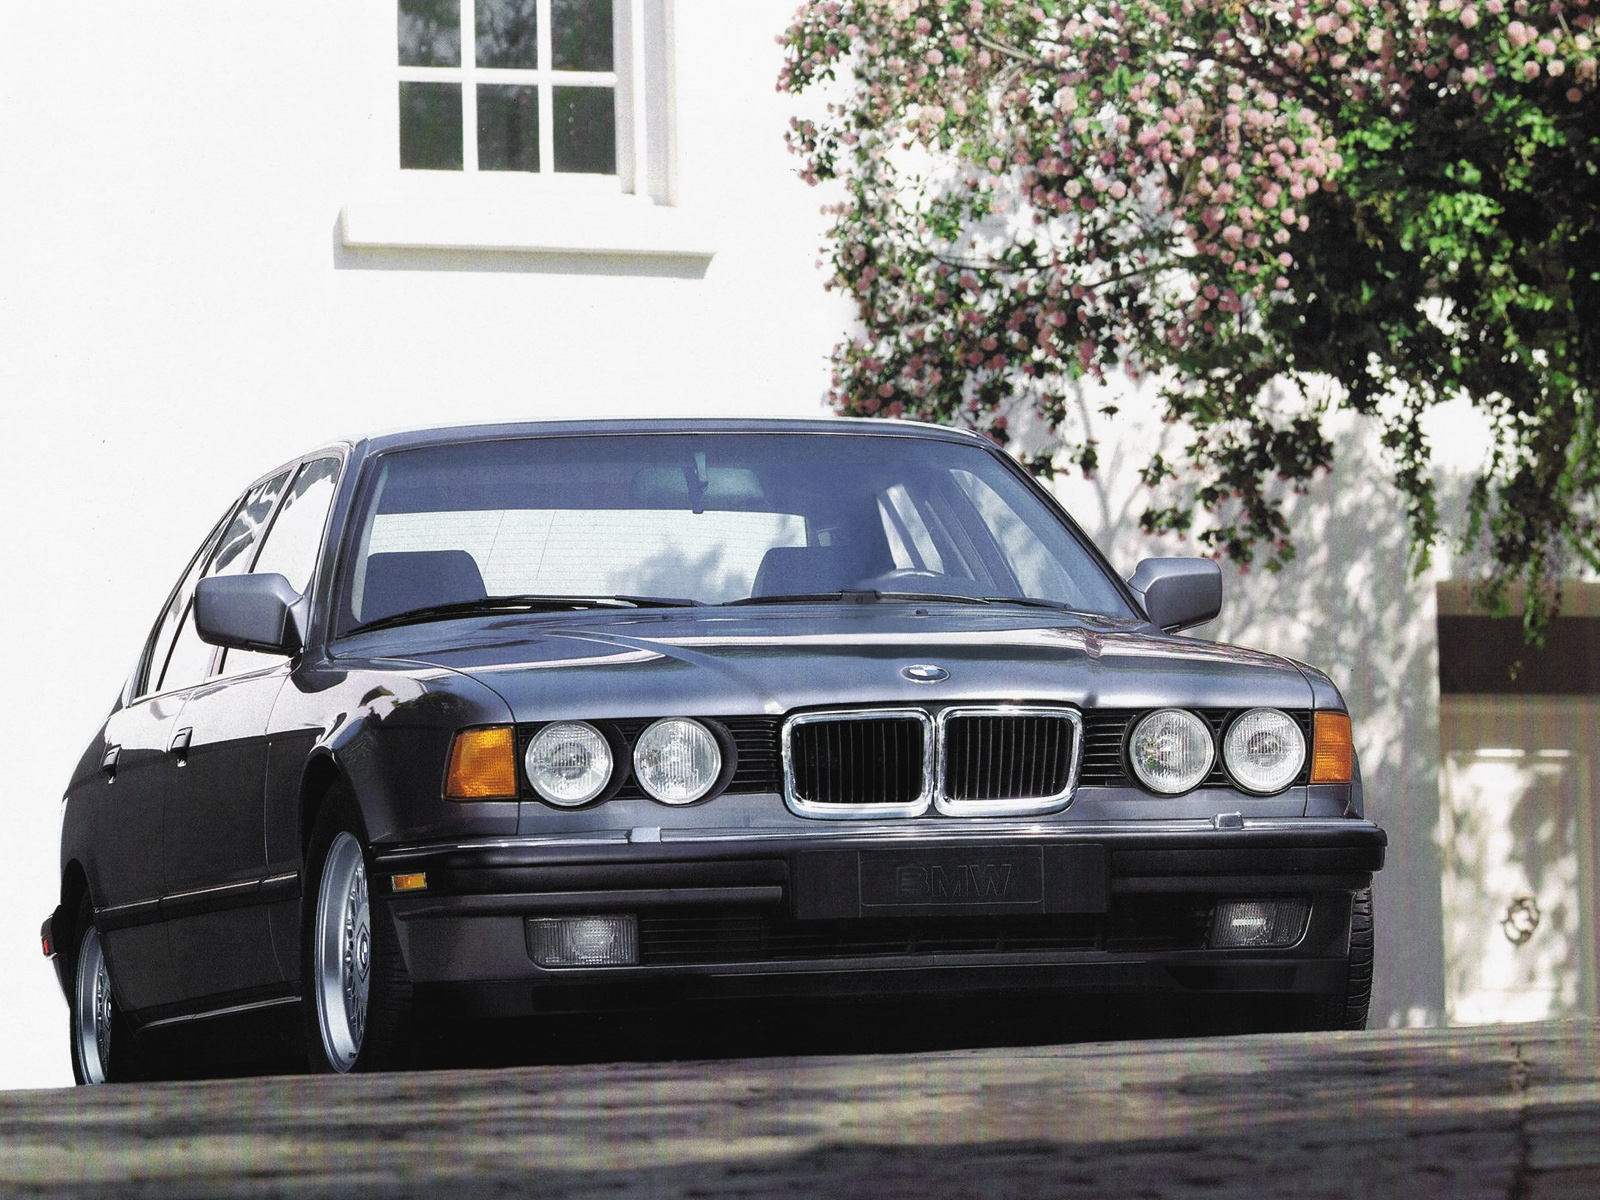 BMW 7 series 740iL 1986 photo - 6